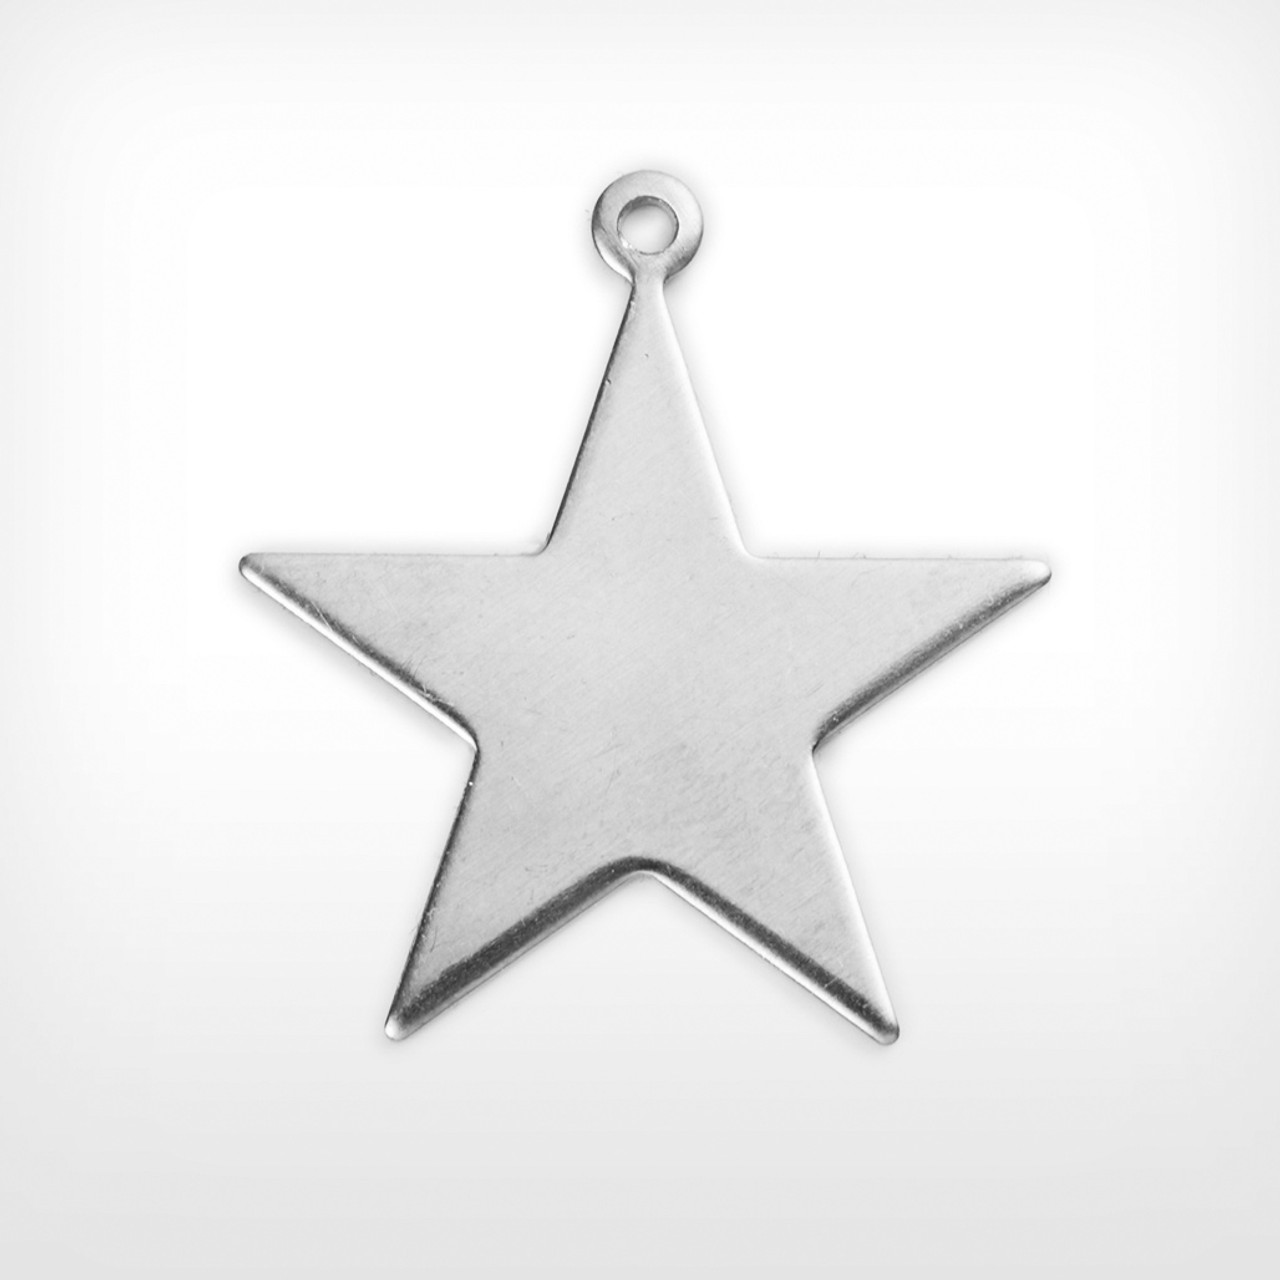 Aluminium Blank Stamped Star for Jewelry Metalwork and & Other Crafts